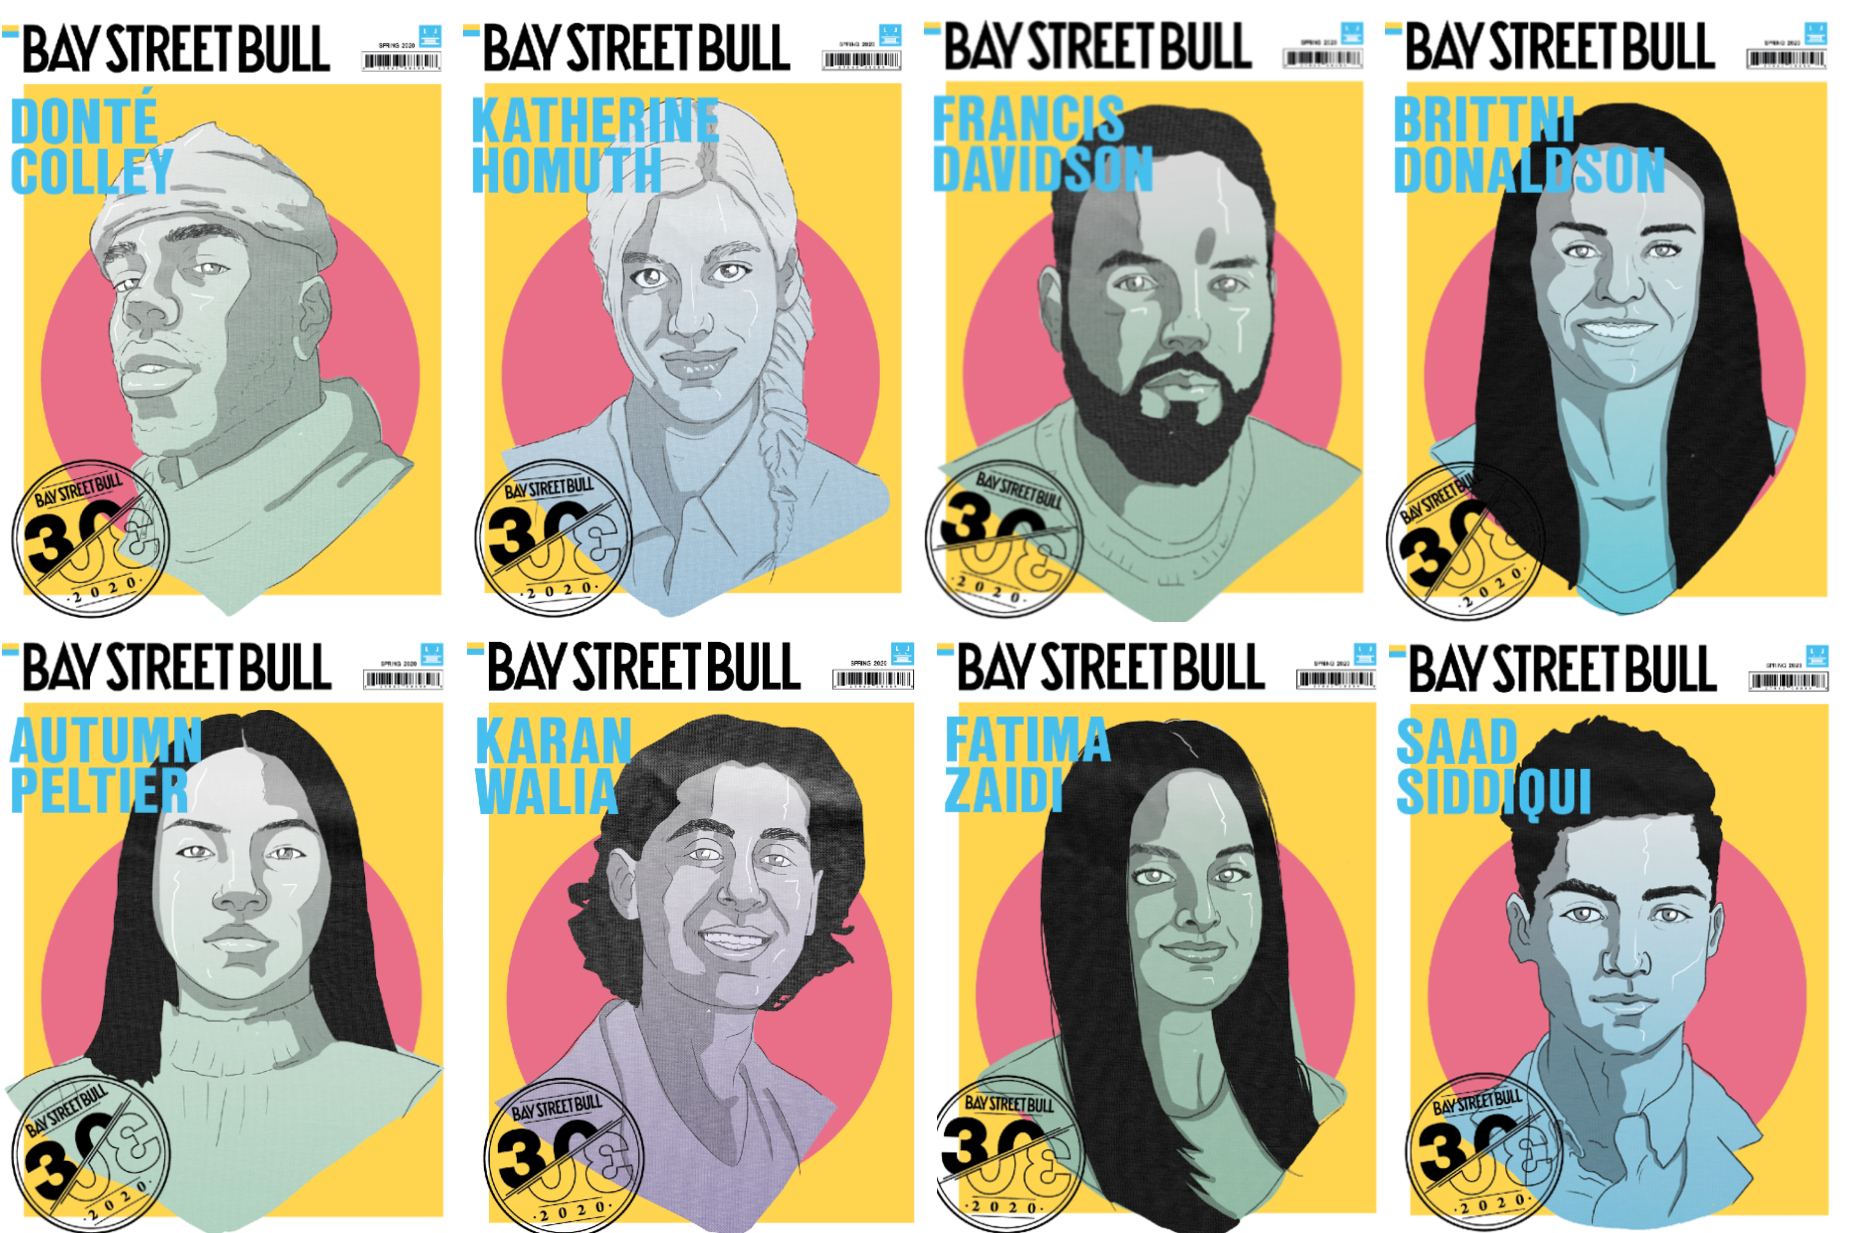 Image displaying various covers for the Bay Street Bull 30X30 issue